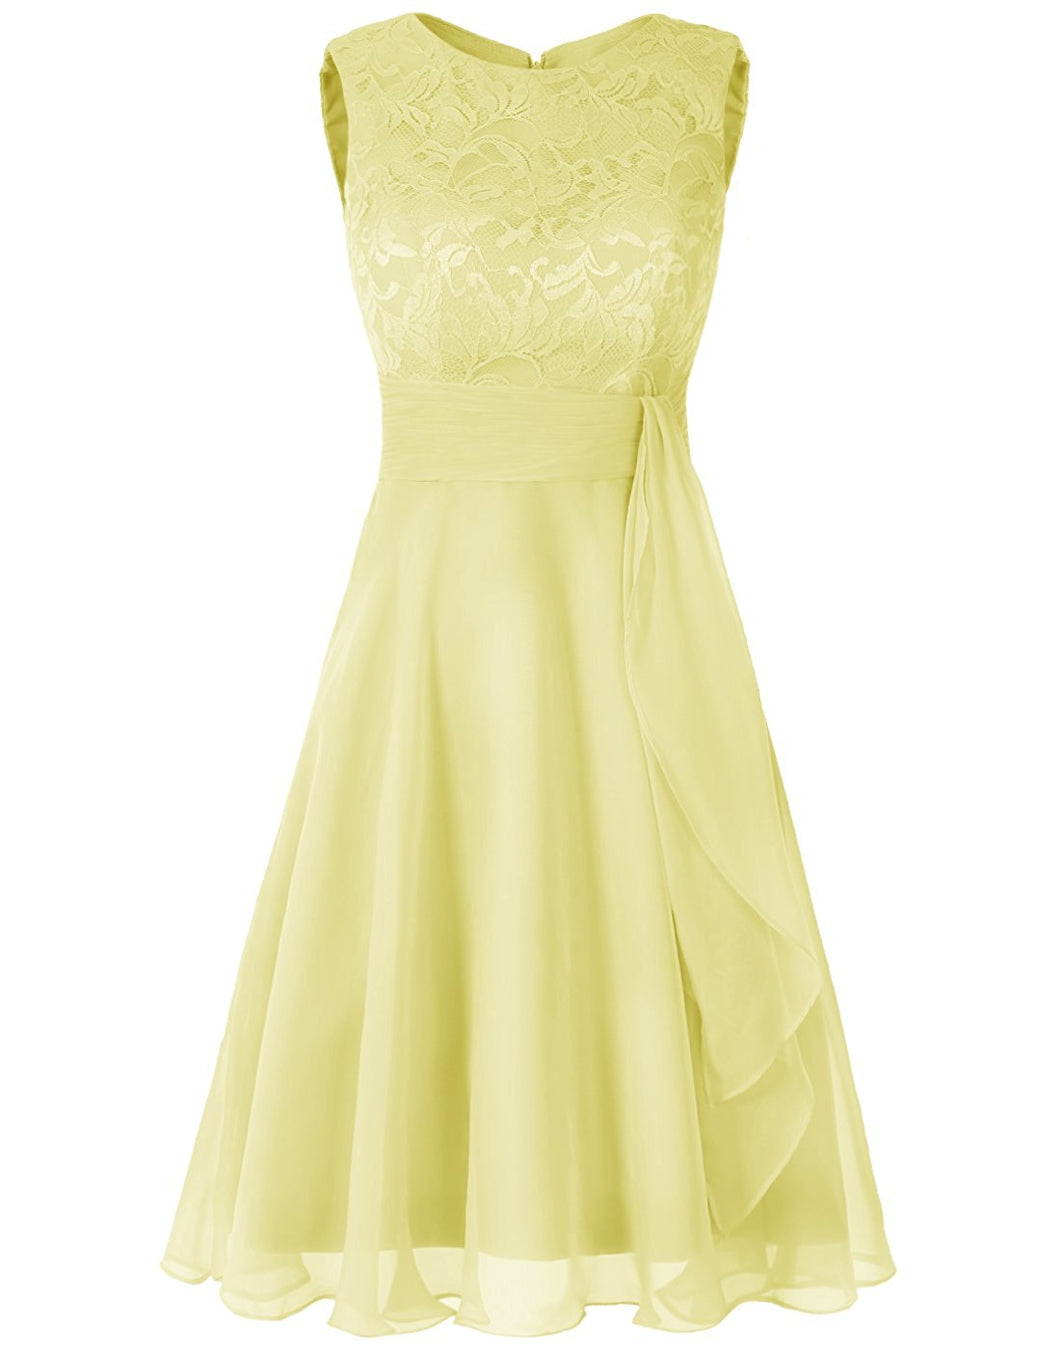 Clara lemon yellow Short Bridesmaid Wedding Bridal Evening Dress UK loulous bridal boutique ltd